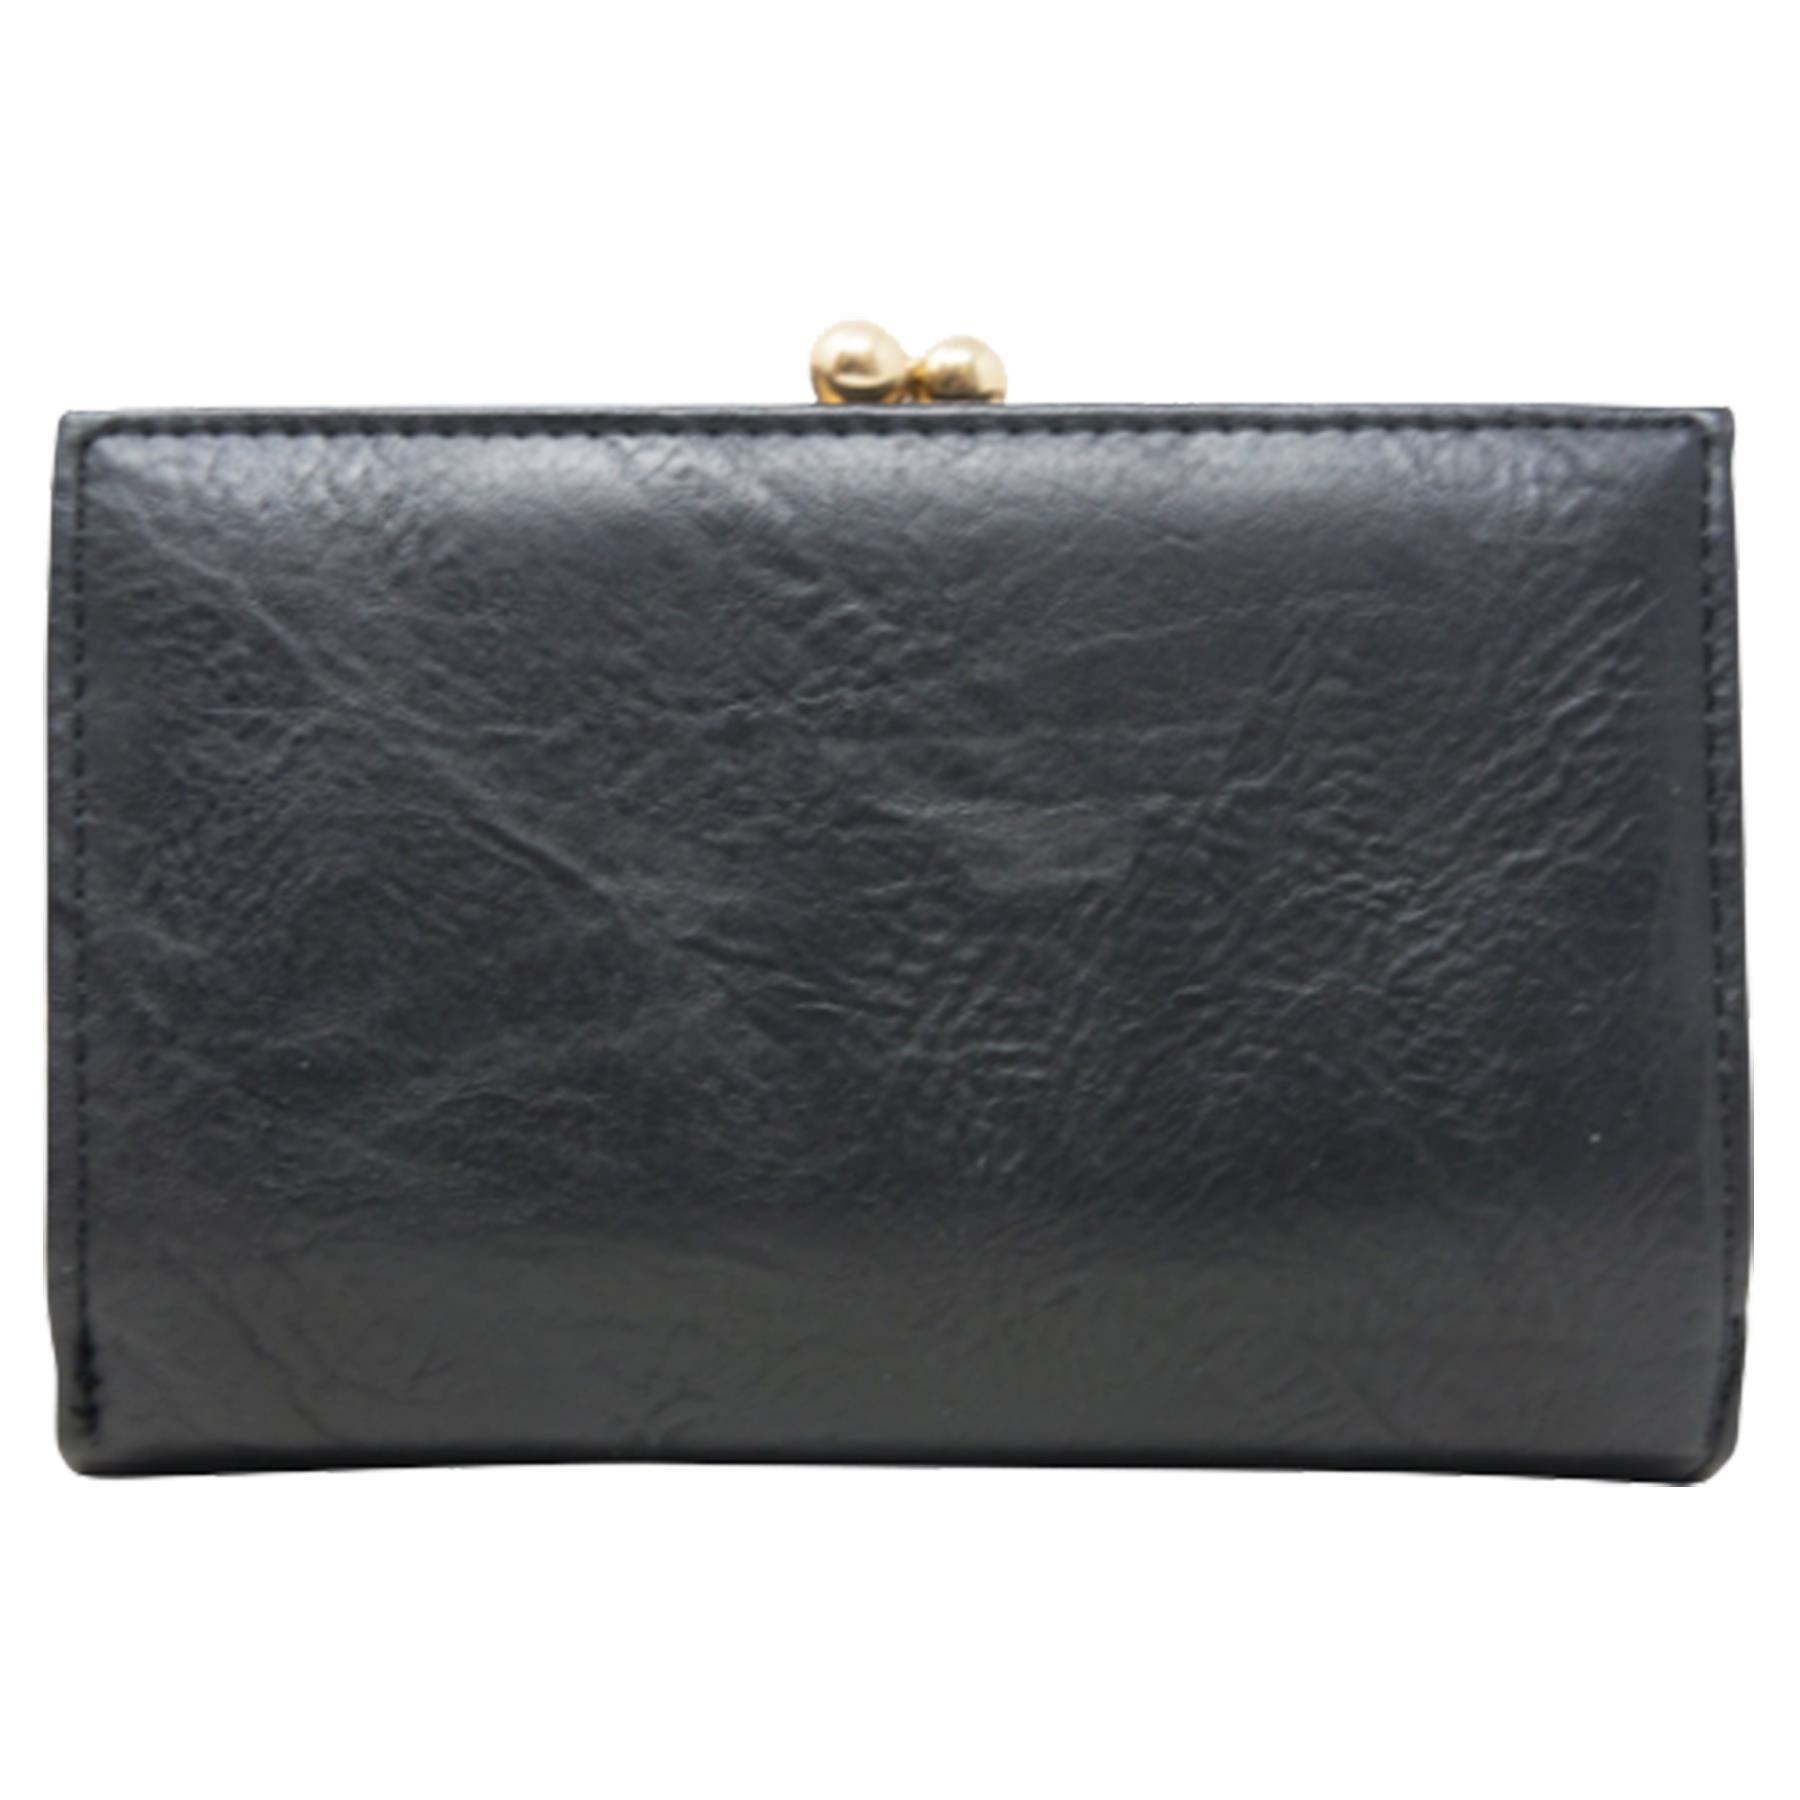 New-Synthetic-Leather-Kiss-Lock-Compartment-Ladies-Casual-Wallet-Purse thumbnail 4